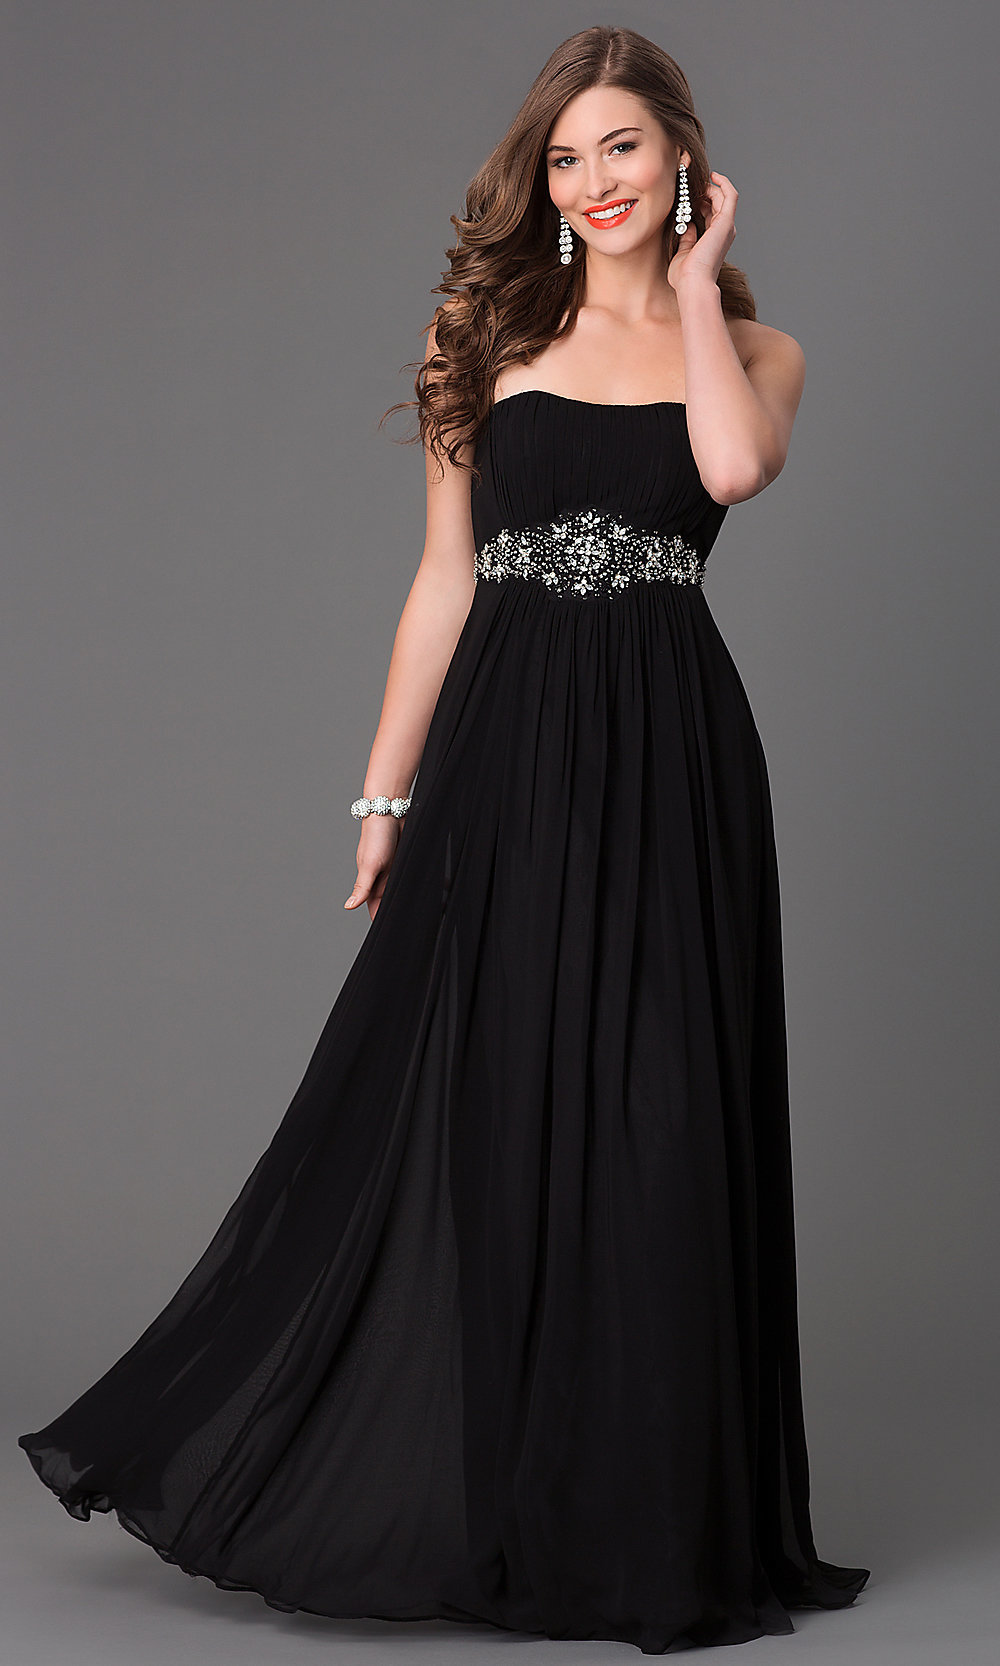 Long Strapless Black-and-White Dress - PromGirl